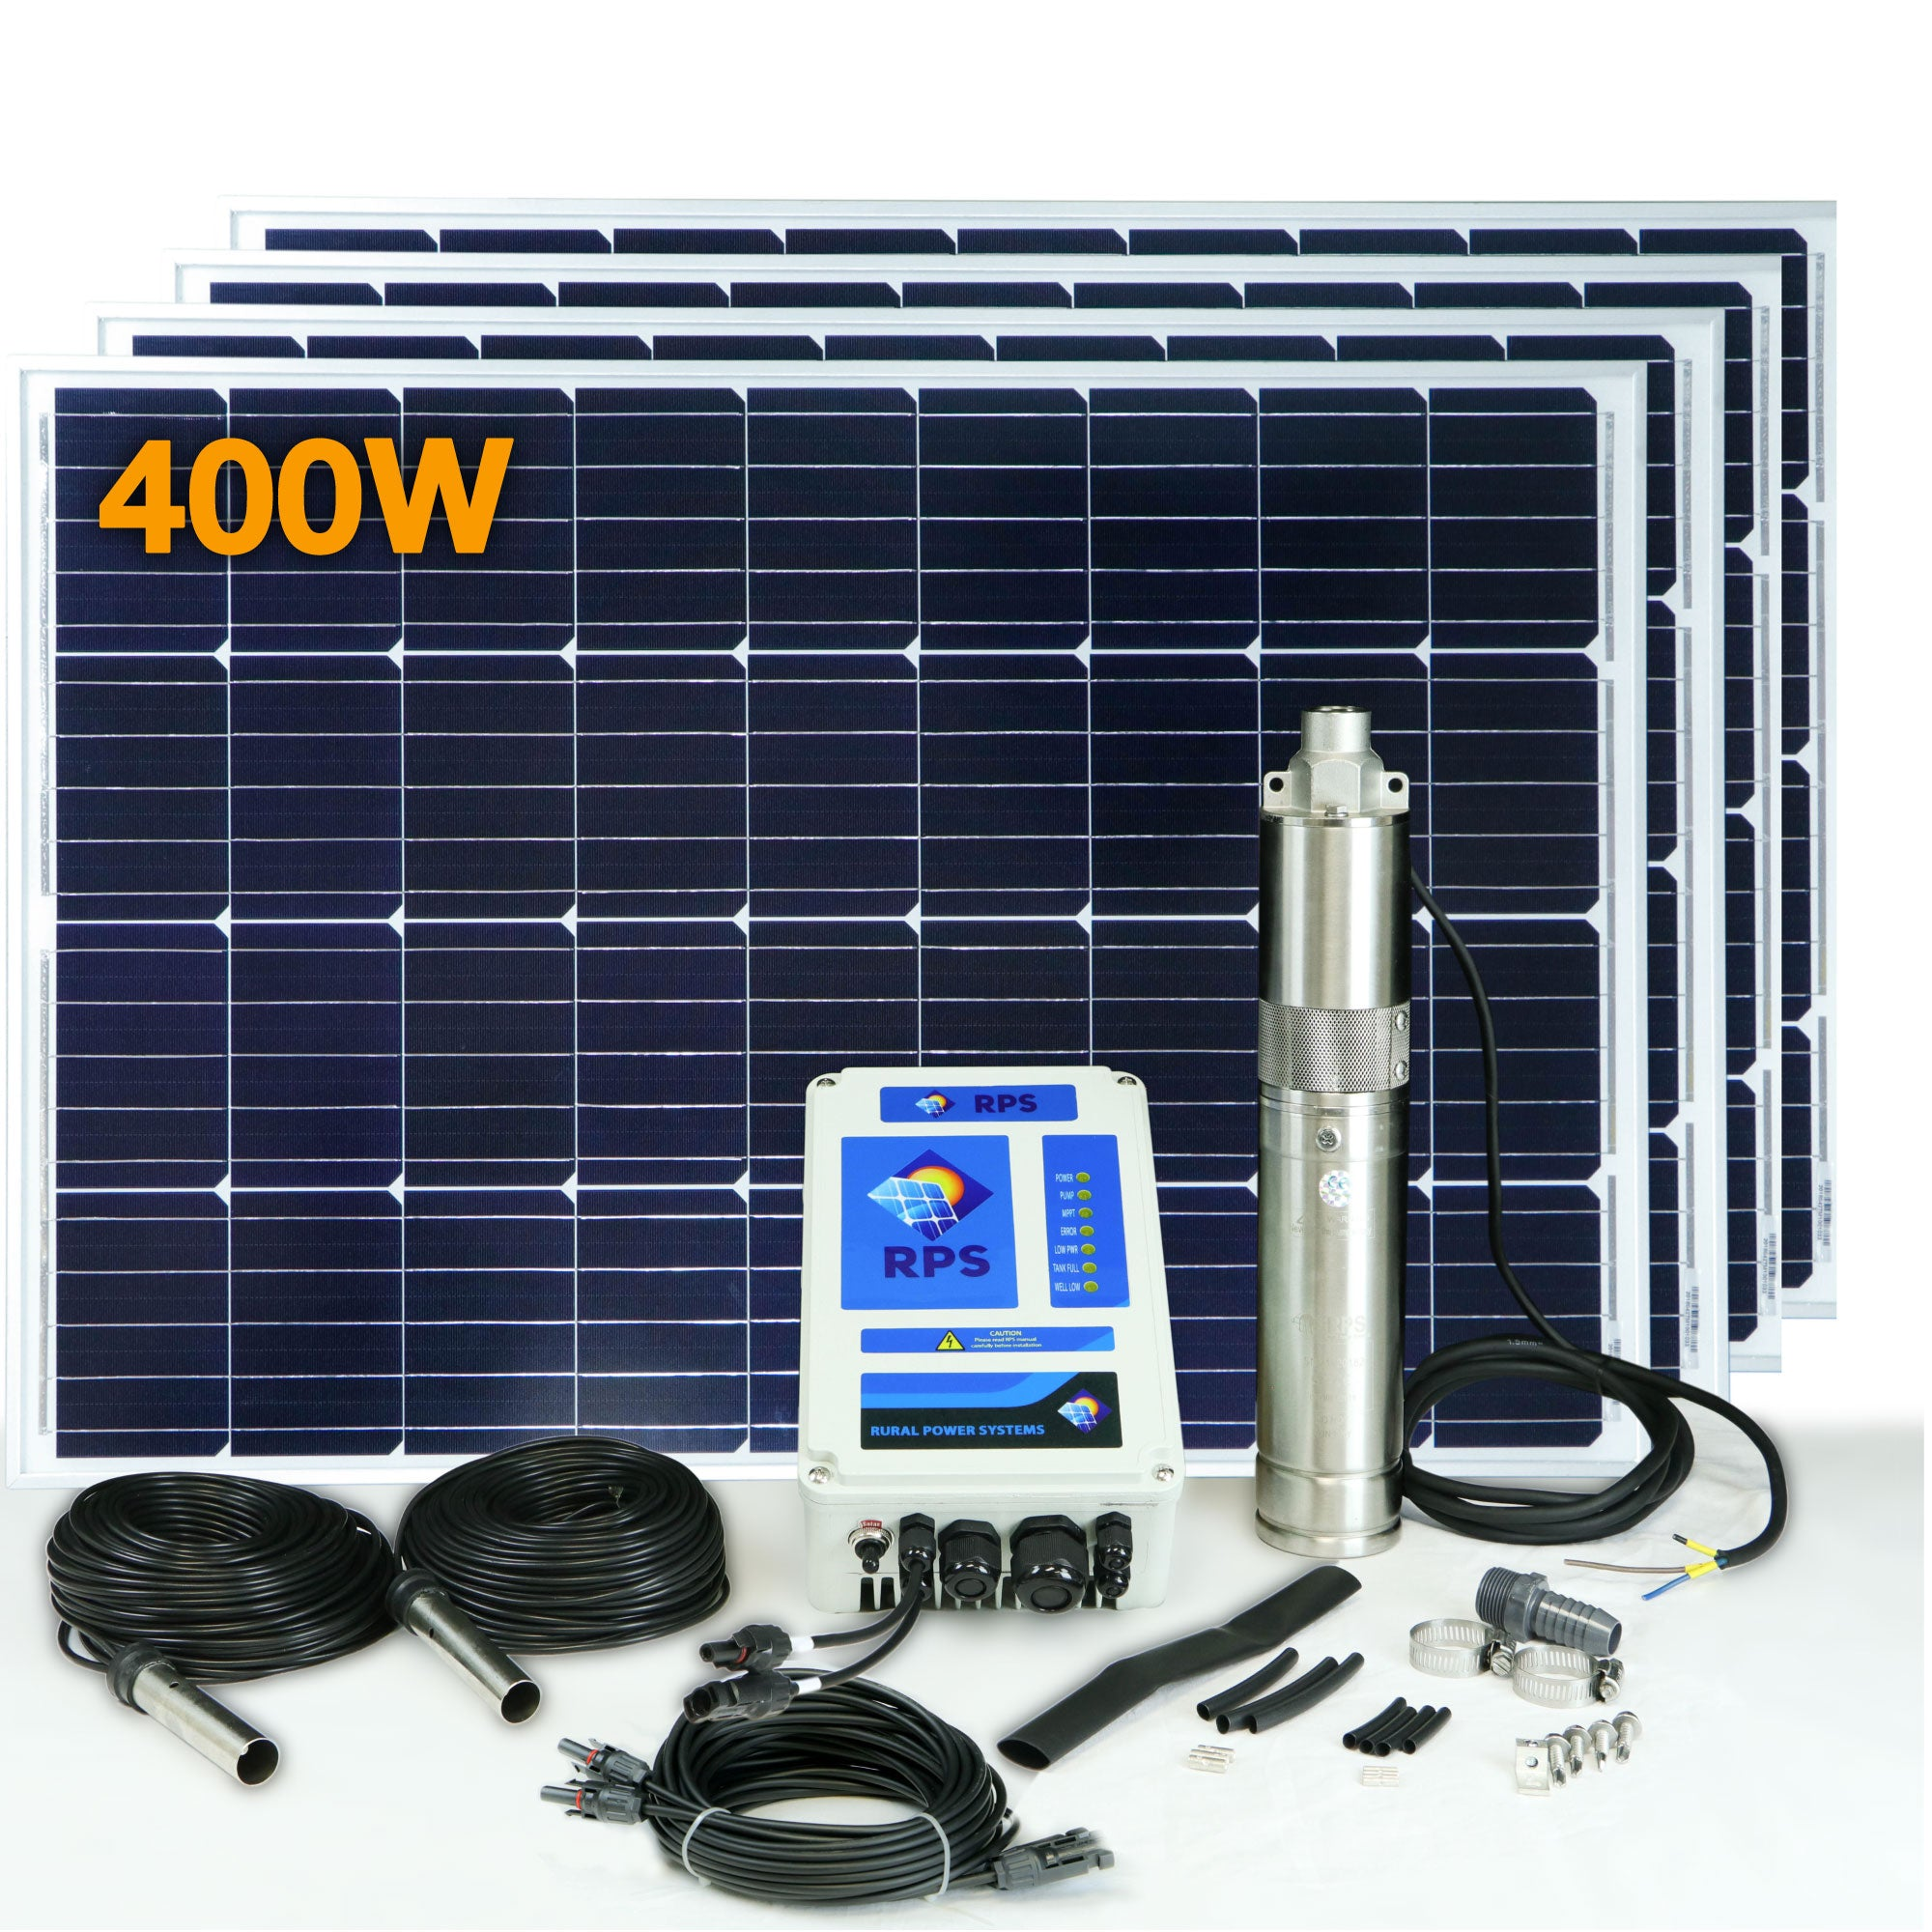 Rps 400 Solar Well Pump Kit Pumps Wiring House For Power